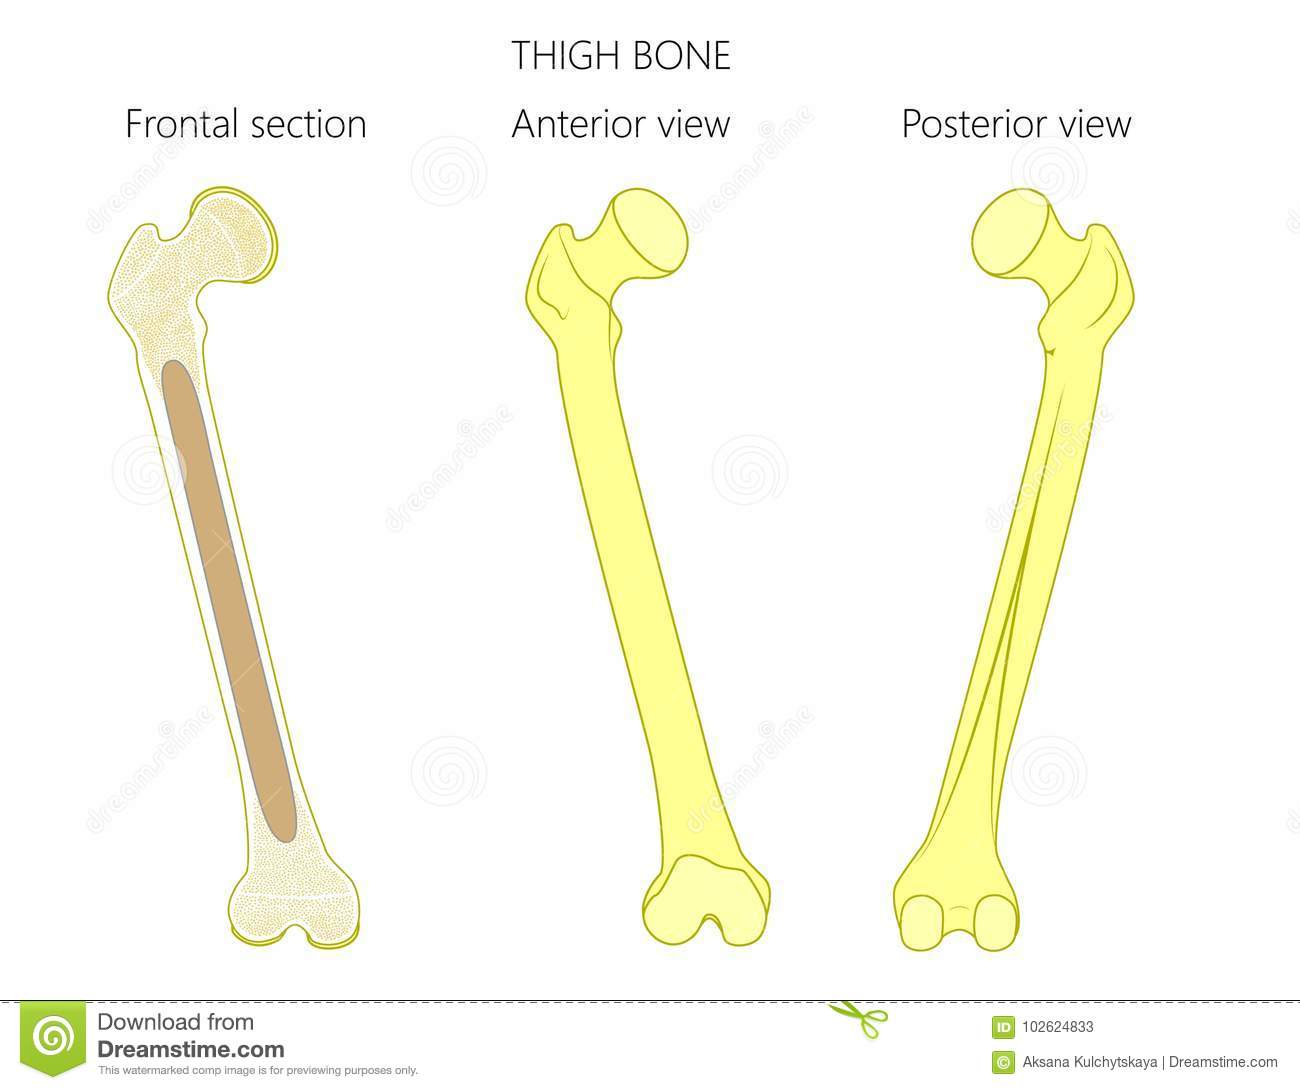 anatomy of a thigh bone  tubular bone and spongy bone structure  frontal  section, anterior and posterior view  for advertising and medical  publications